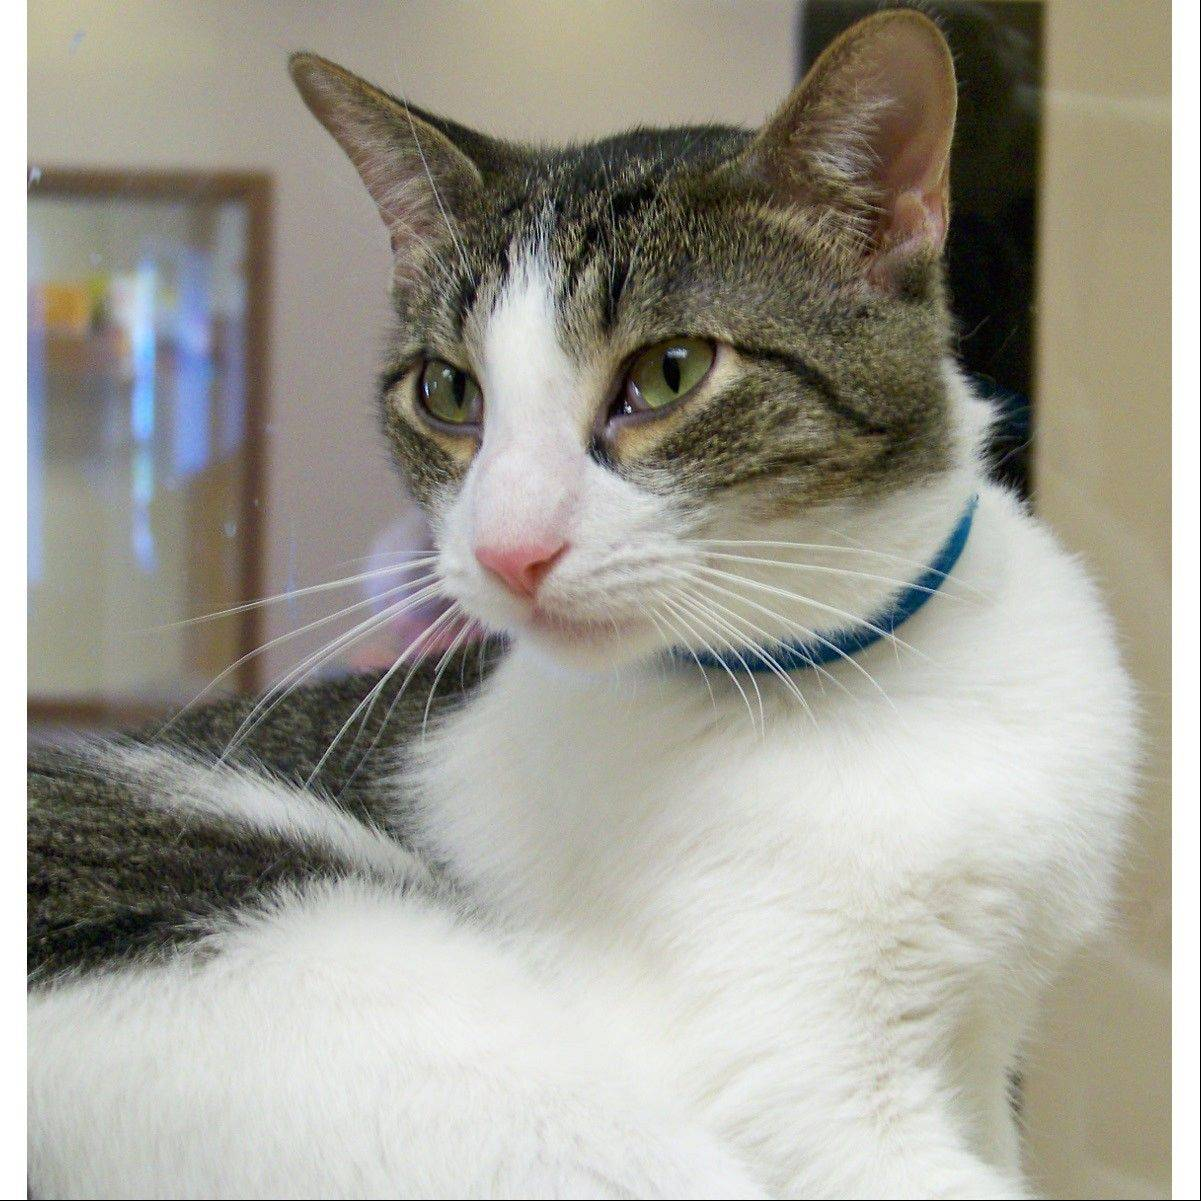 Sly is a very sweet and handsome 6-year-old, domestic shorthair, gray, tabby cat. He loves people and is a lap cat who loves to be petted. He is waiting for you to take him home. Sly is best friends with Rascal and plays well with other cats.